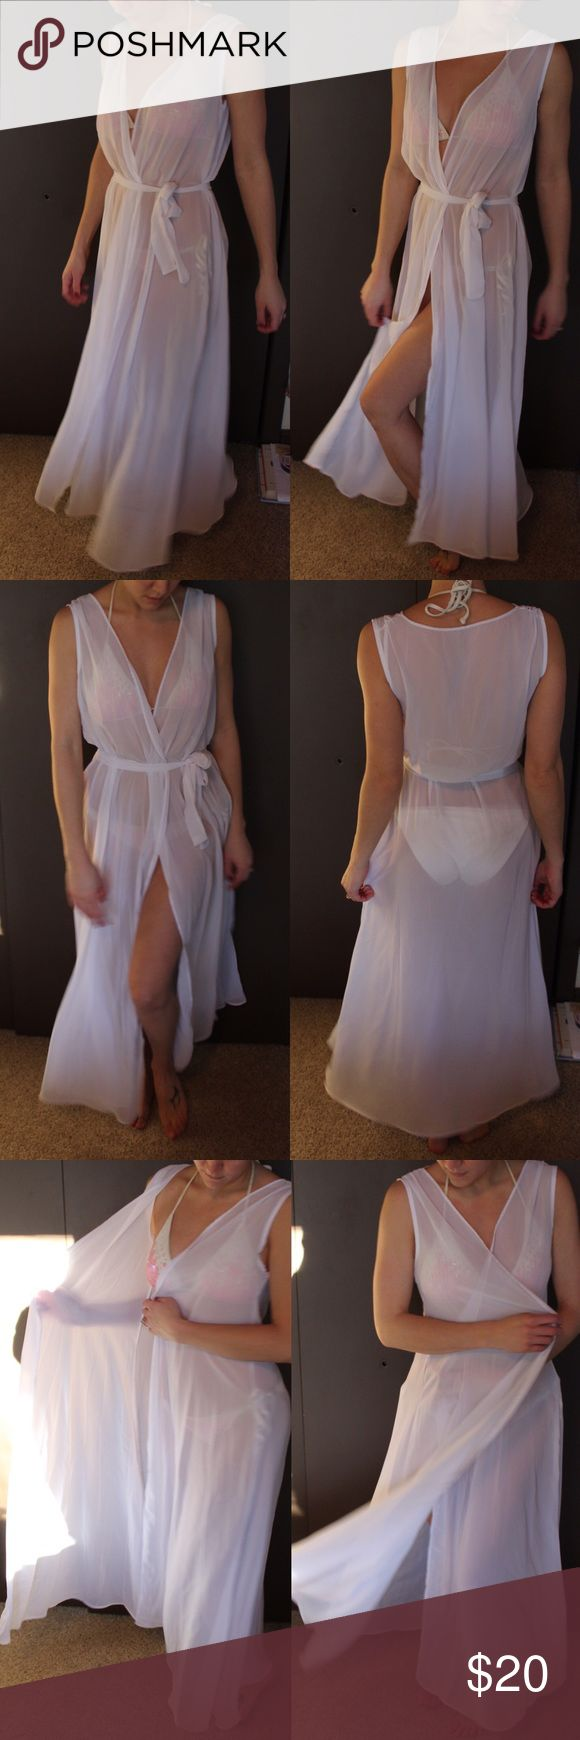 Sheer Chiffon Cover Up with Belt Perfect for a boudoir or maternity shoot, or just wear as a beach cover up! One size fits most. Comes with a ribbon of the material to use as a belt. Swim Coverups